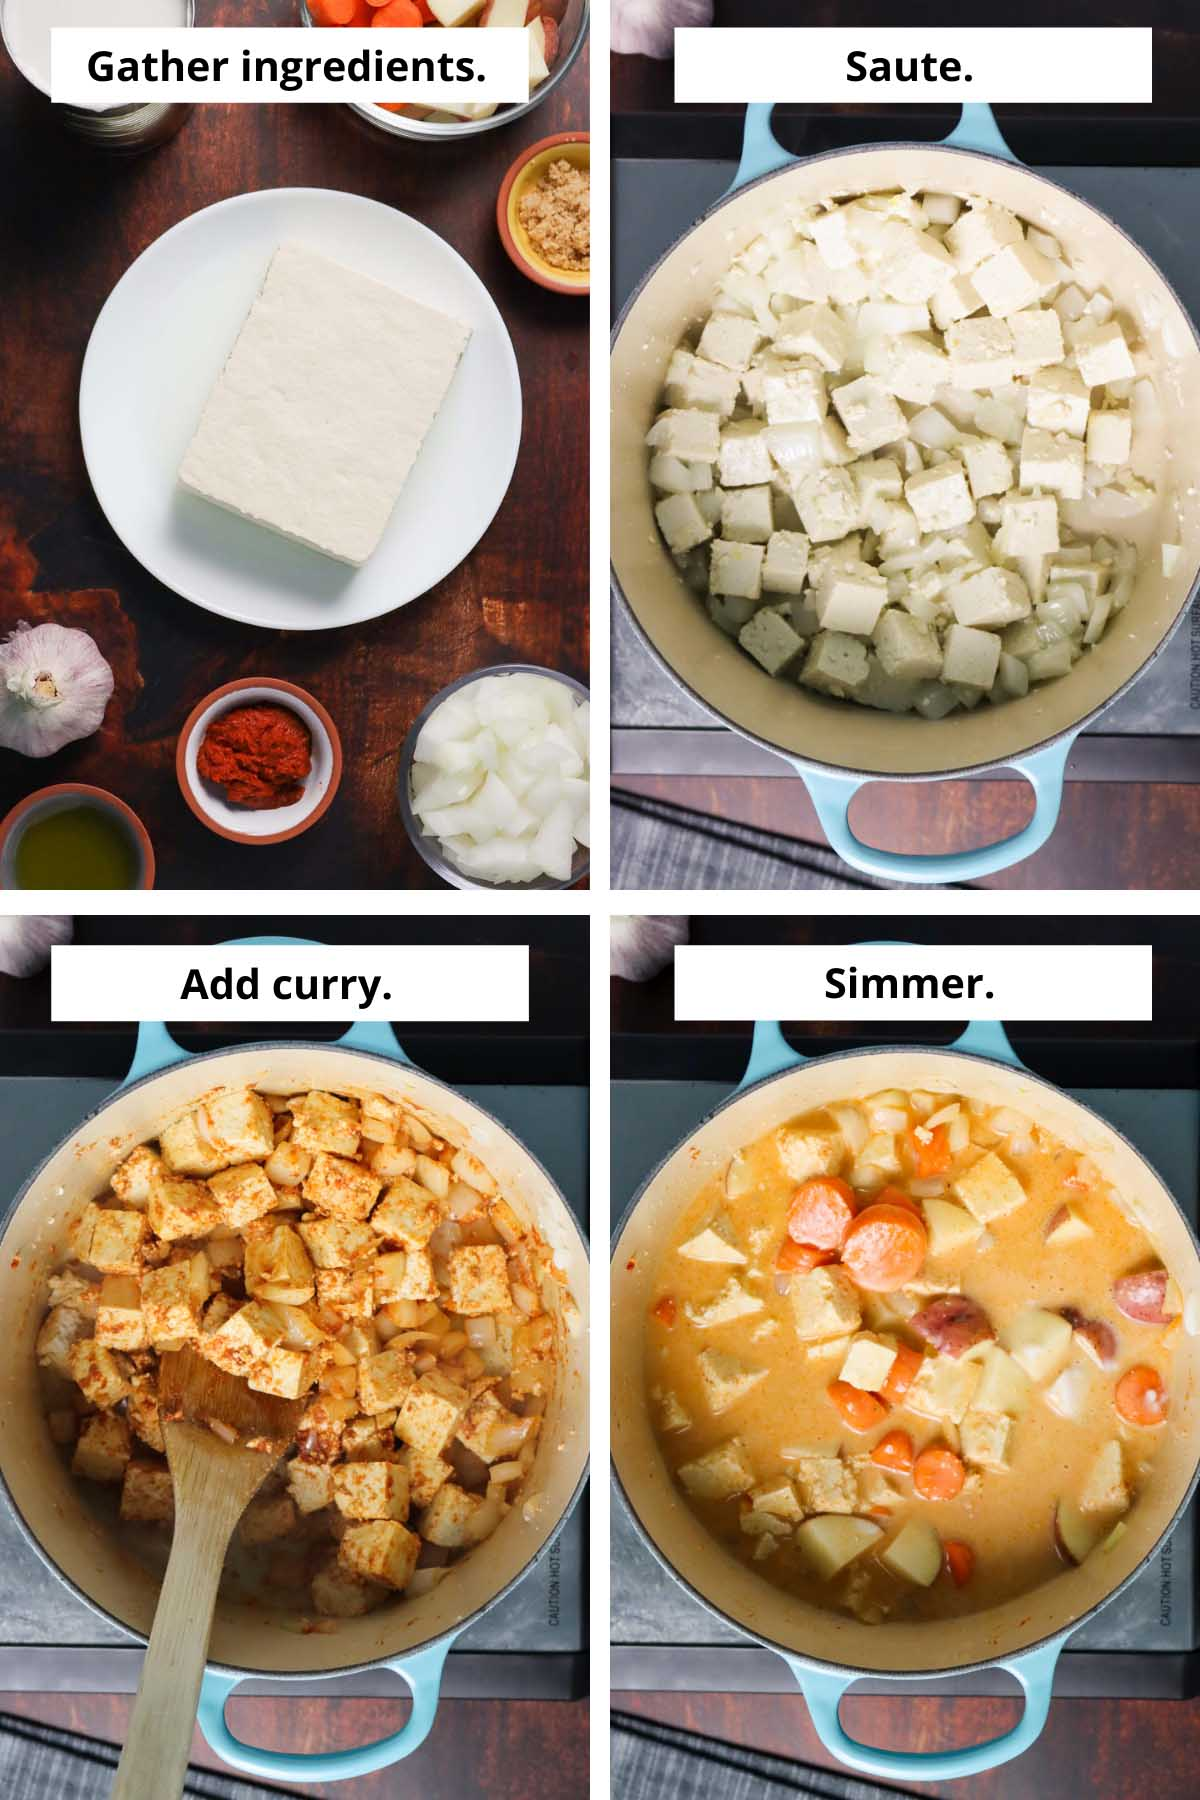 image collage showing the curry ingredients and the steps to make it